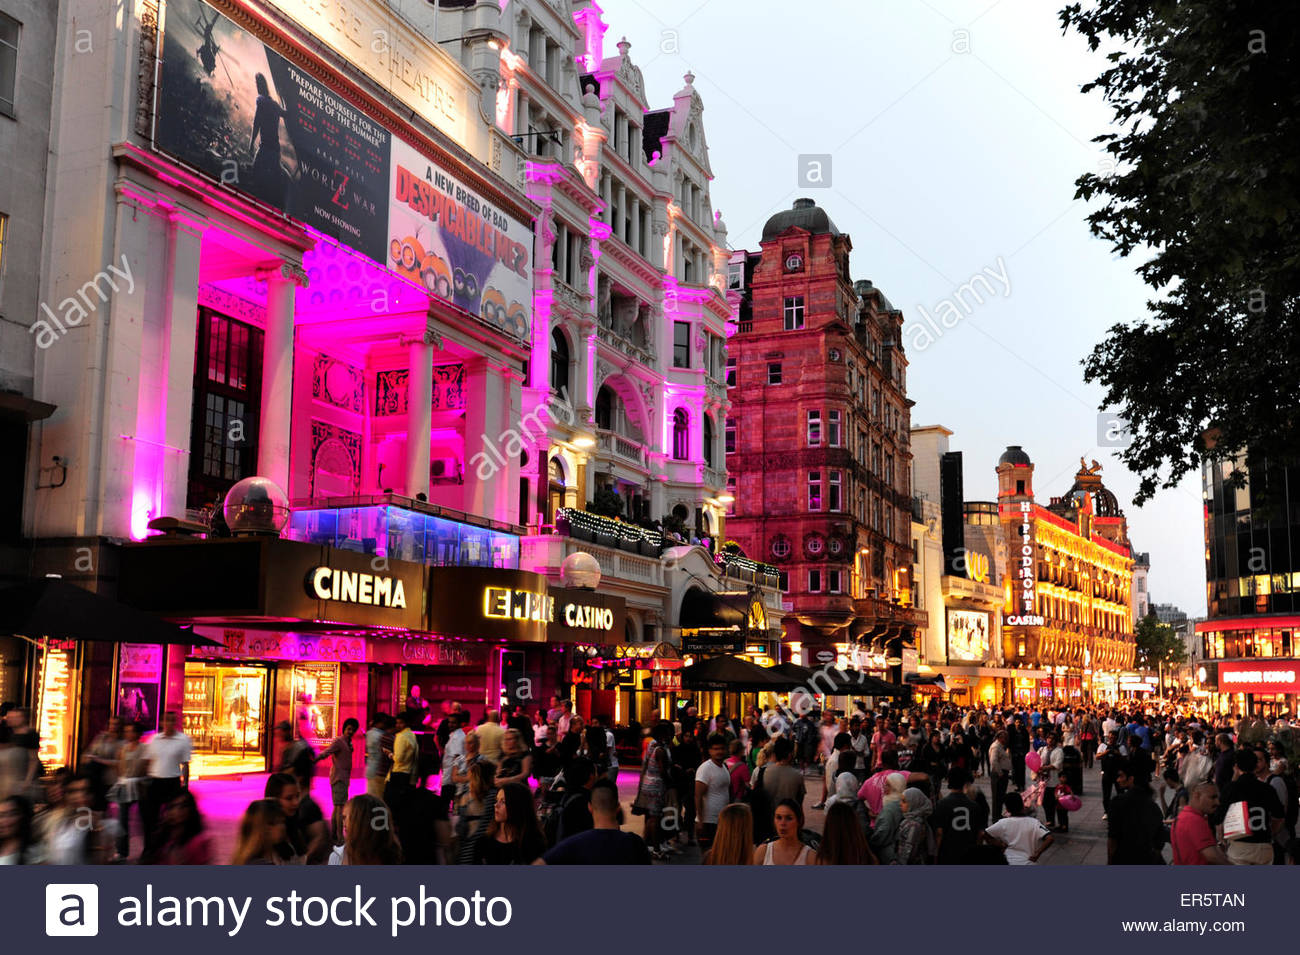 Empire Cinema, nightlife at Leicester Square, Soho quarter, West End, London, England, Great Britain, United Kingdom - Stock Image